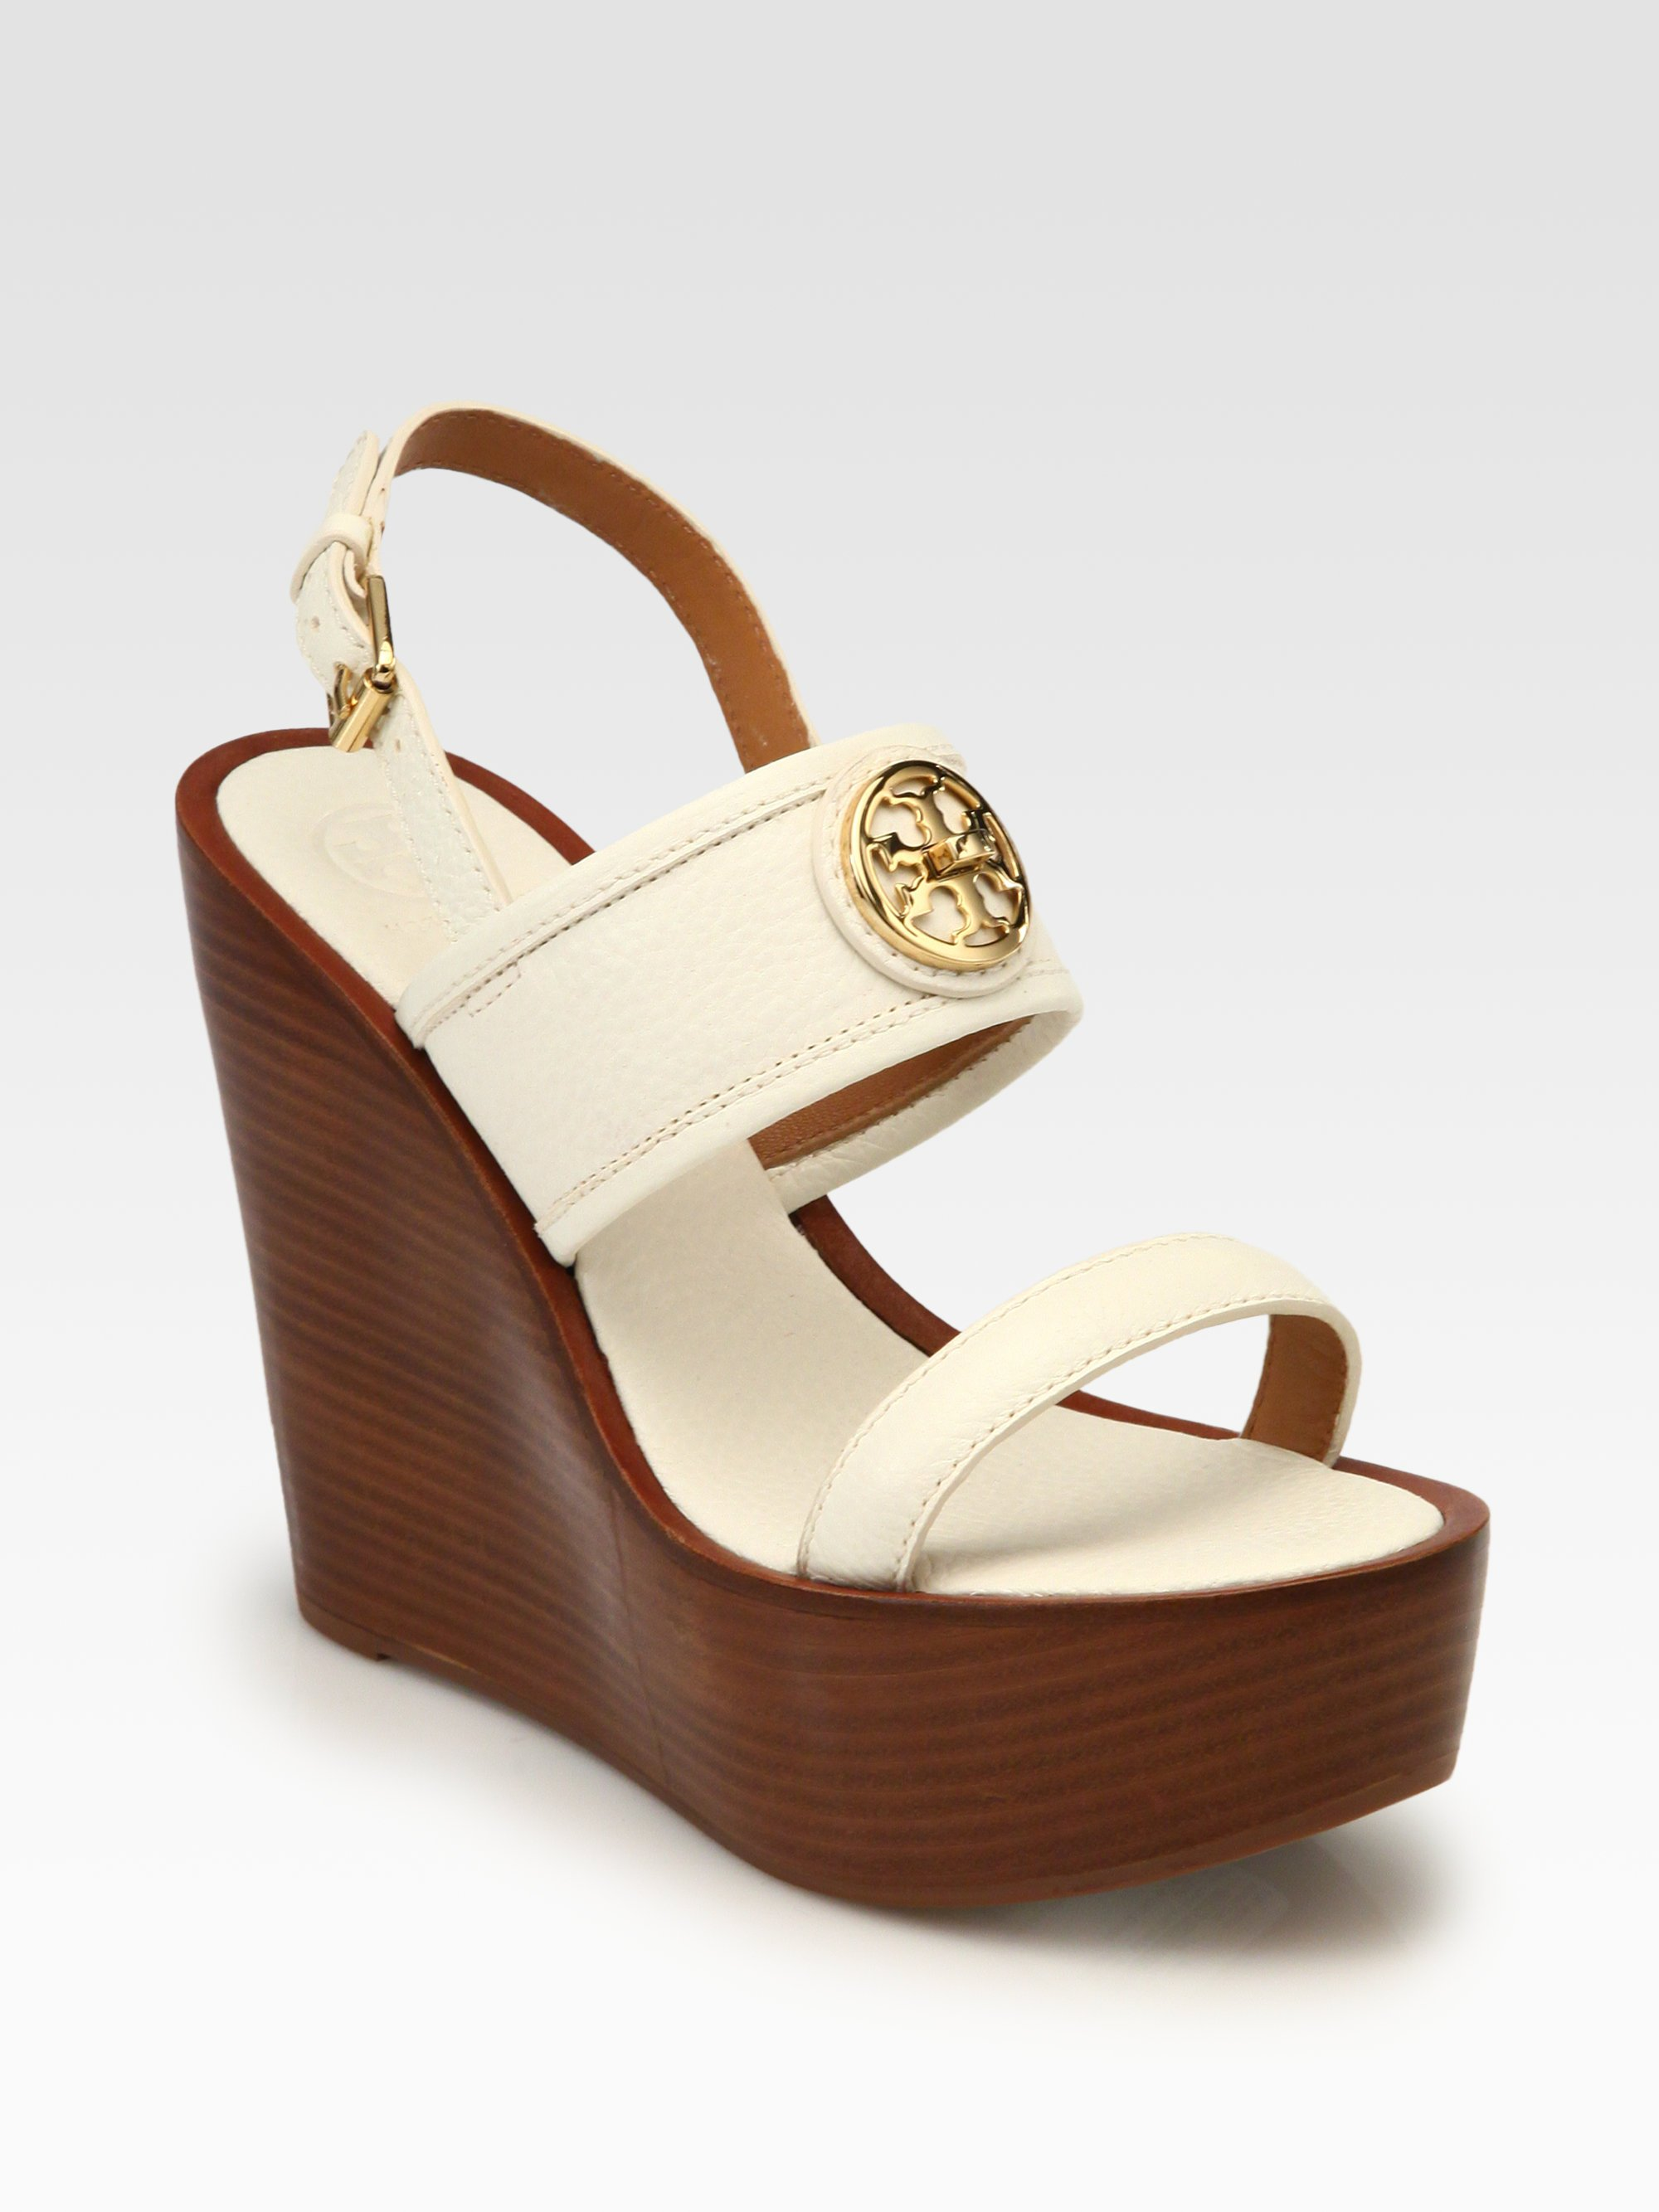 79cedb66be98 Lyst - Tory Burch Selma Leather Wedge Sandals in Brown